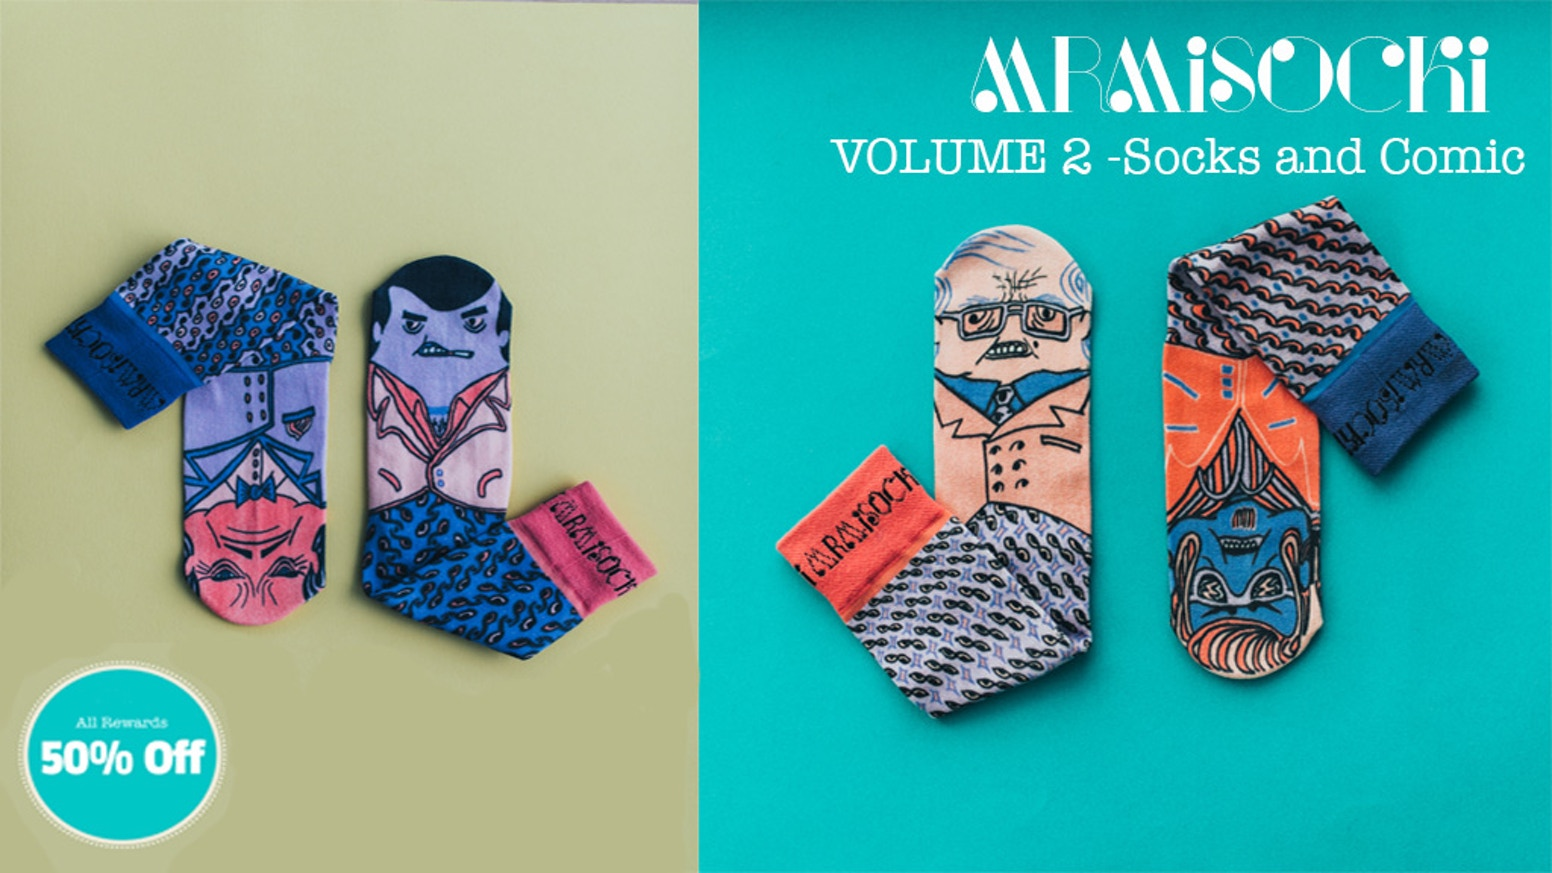 Mismatched socks based on characters from a comic book story that's also included. Volume 2 is about the Sockoni Family, the sock mafia